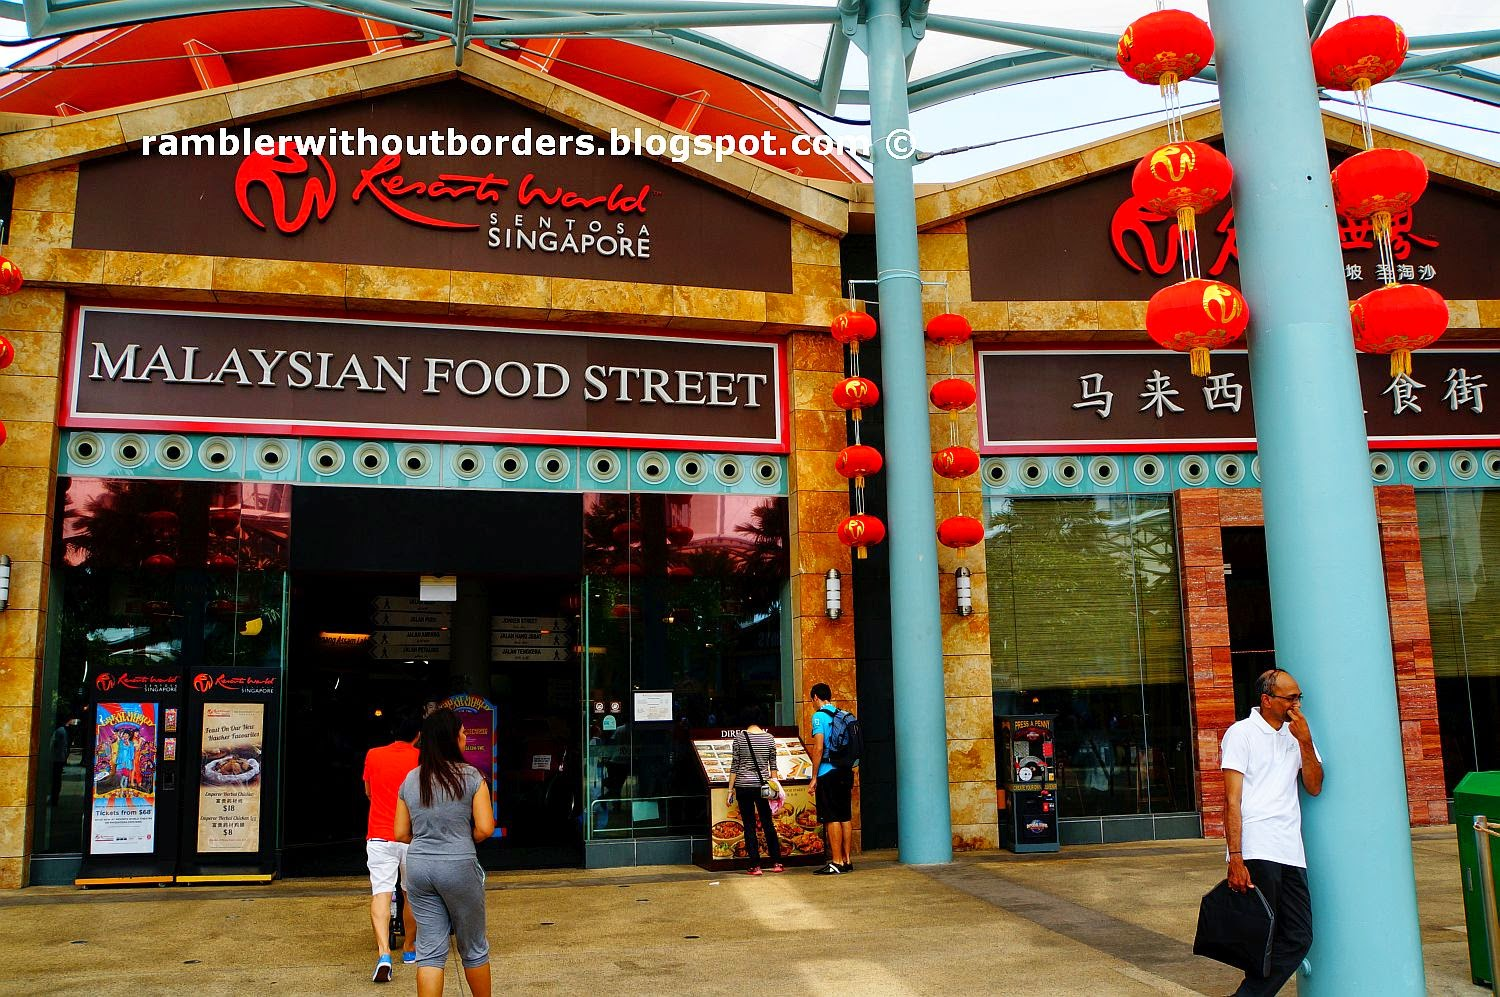 penang food street culture Penang, malaysia has once again been voted as the no 1 haven for street food in asia foodies, prepare for a gastronomic journey in these top food places.